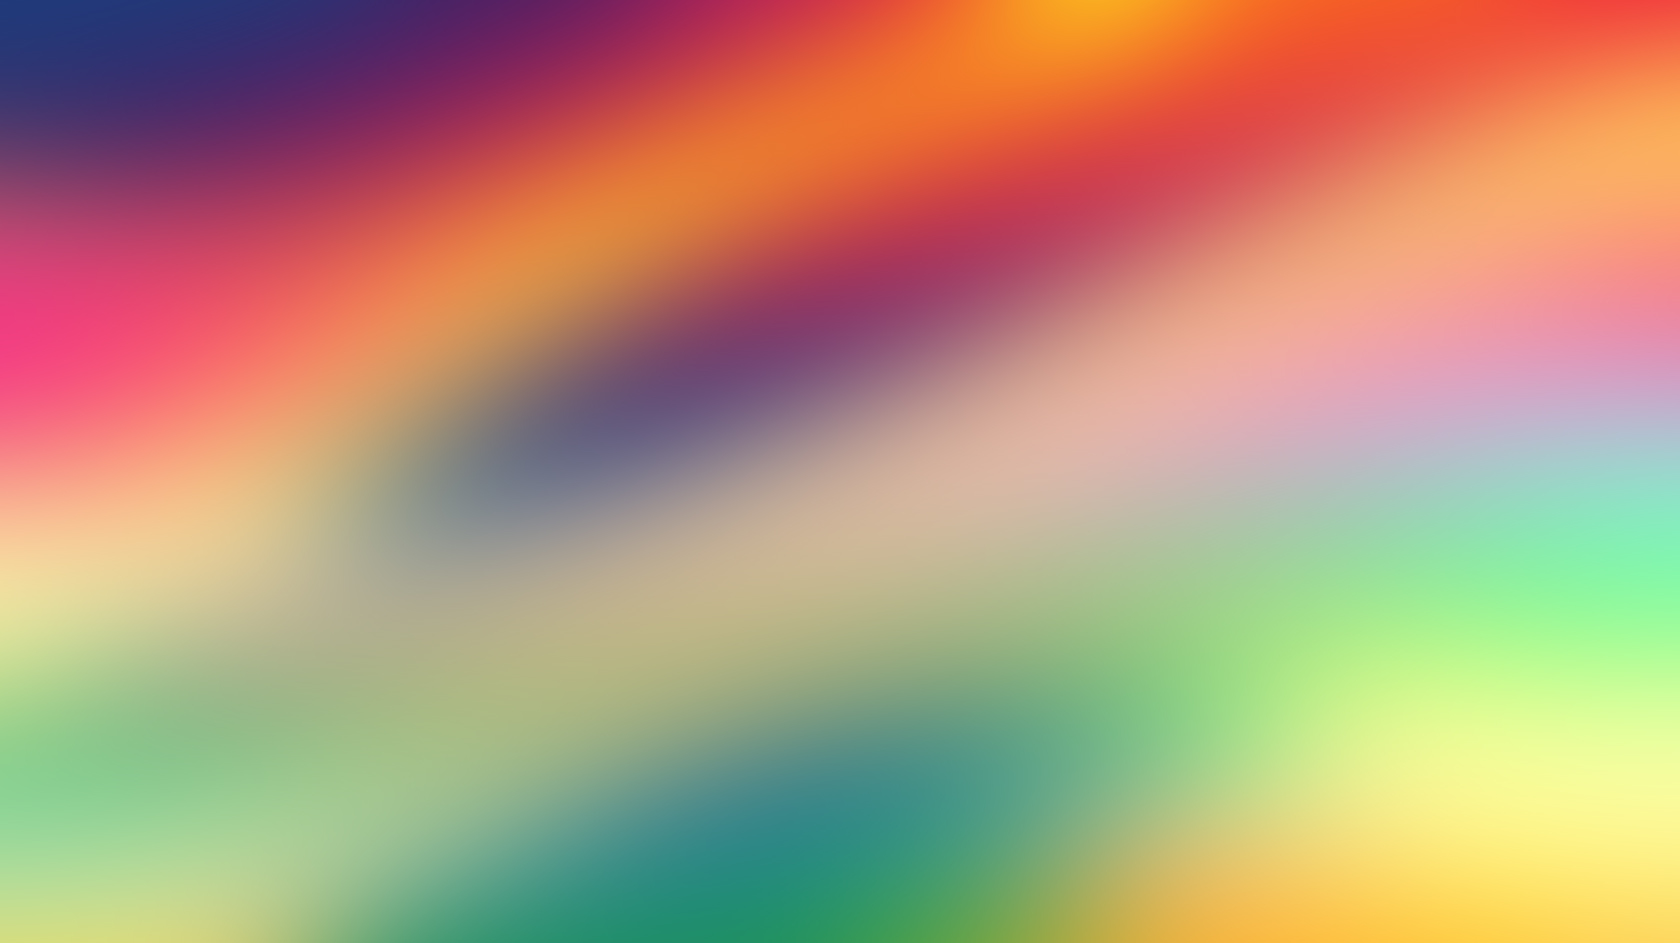 rainbows gaussian blur abstract